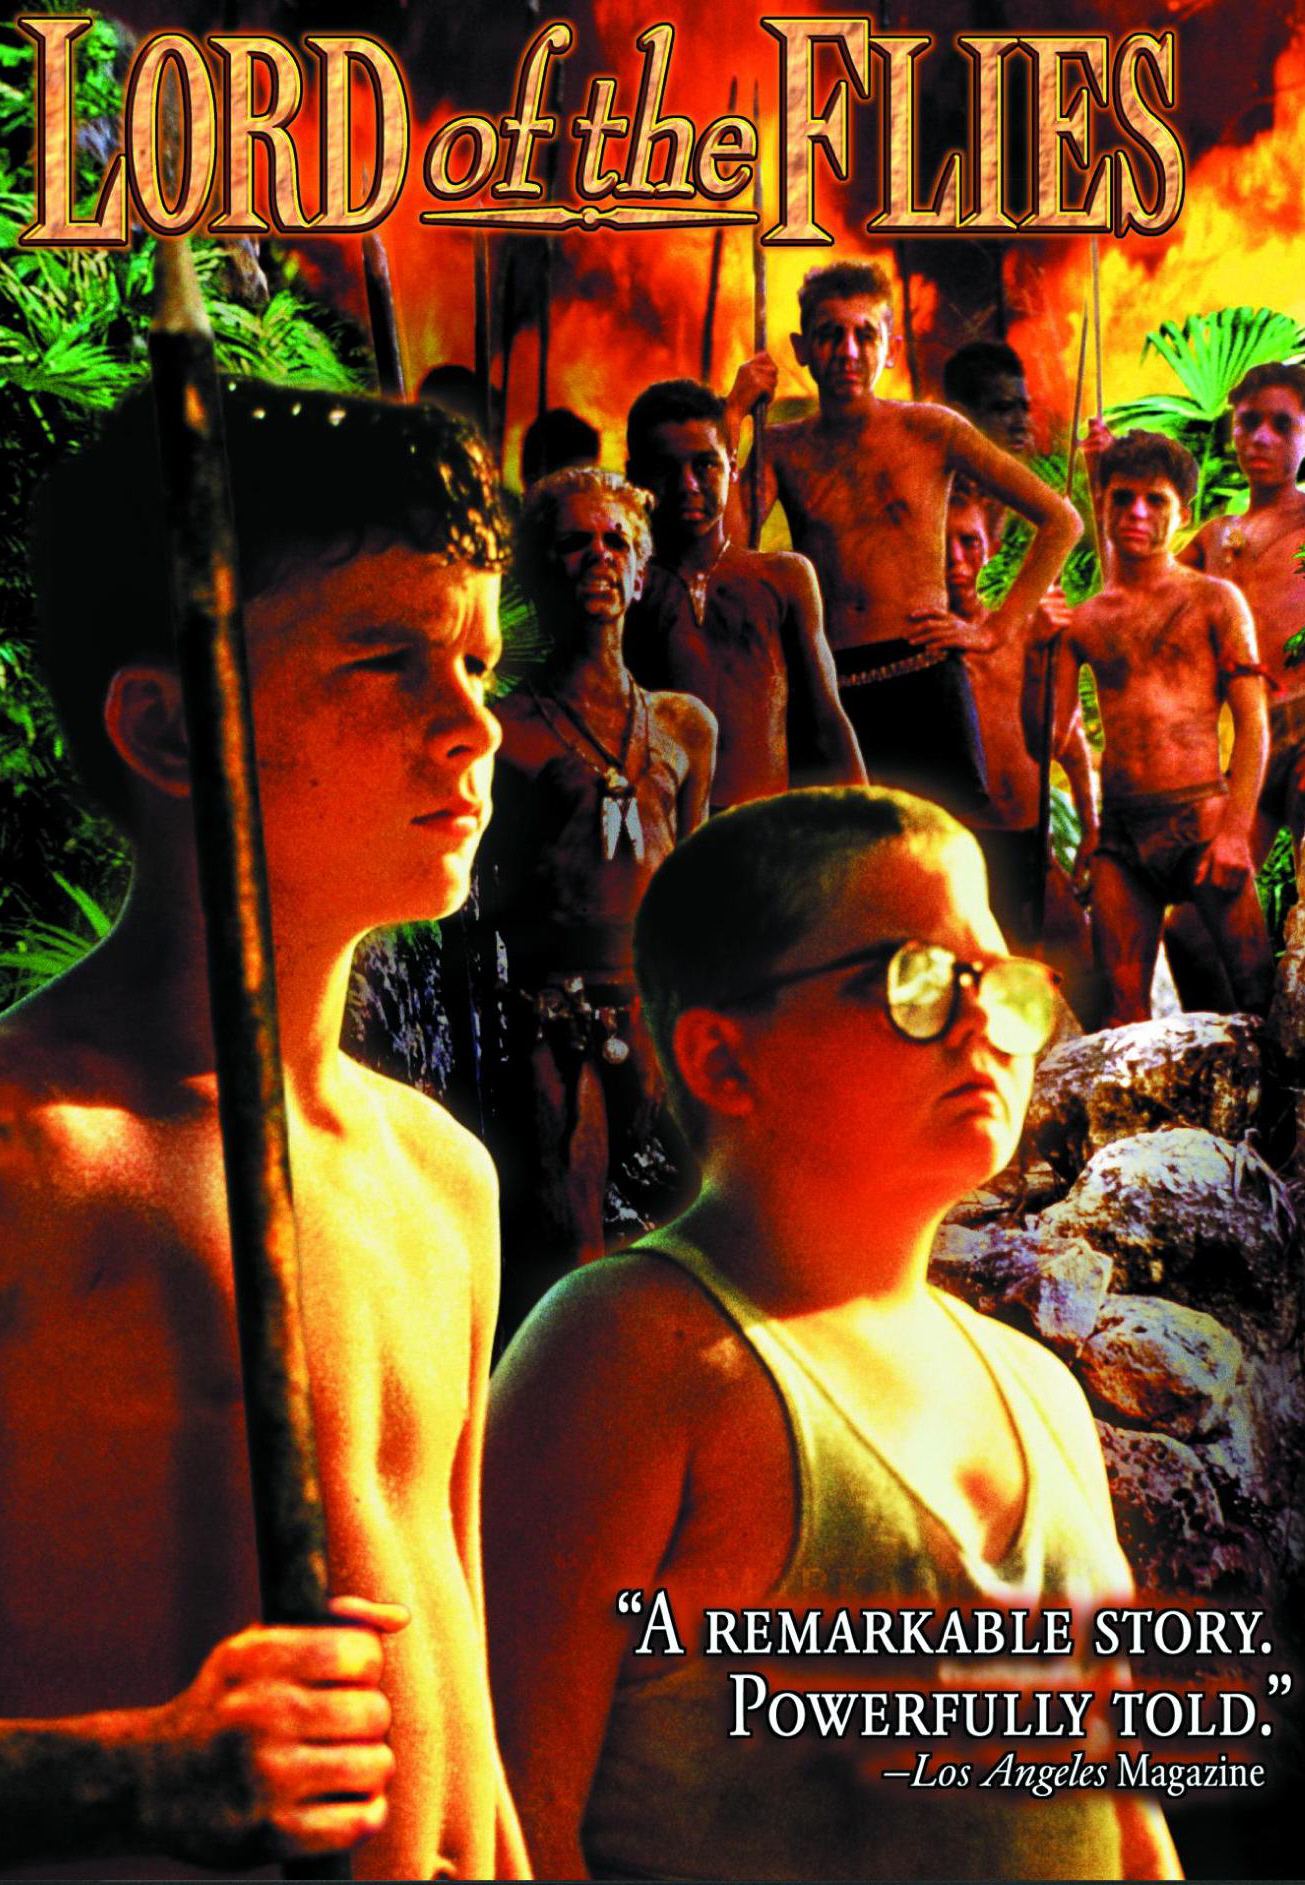 an overview of the fear in the lord of the flies novel by william golding Chapter summary for william golding's lord of the flies, chapter 6 summary  analysis of chapter 6 of william golding's novel lord of the flies  fear but calms.